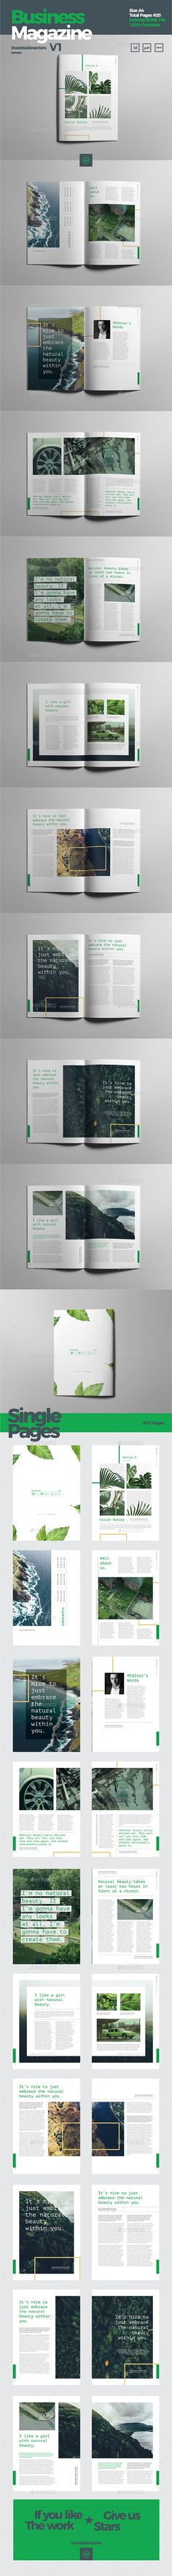 Magazine by westsidevectors 20 Pages Modern Magazine is an amazing magazine template with variation layout for mix and match page. This is for publication mag